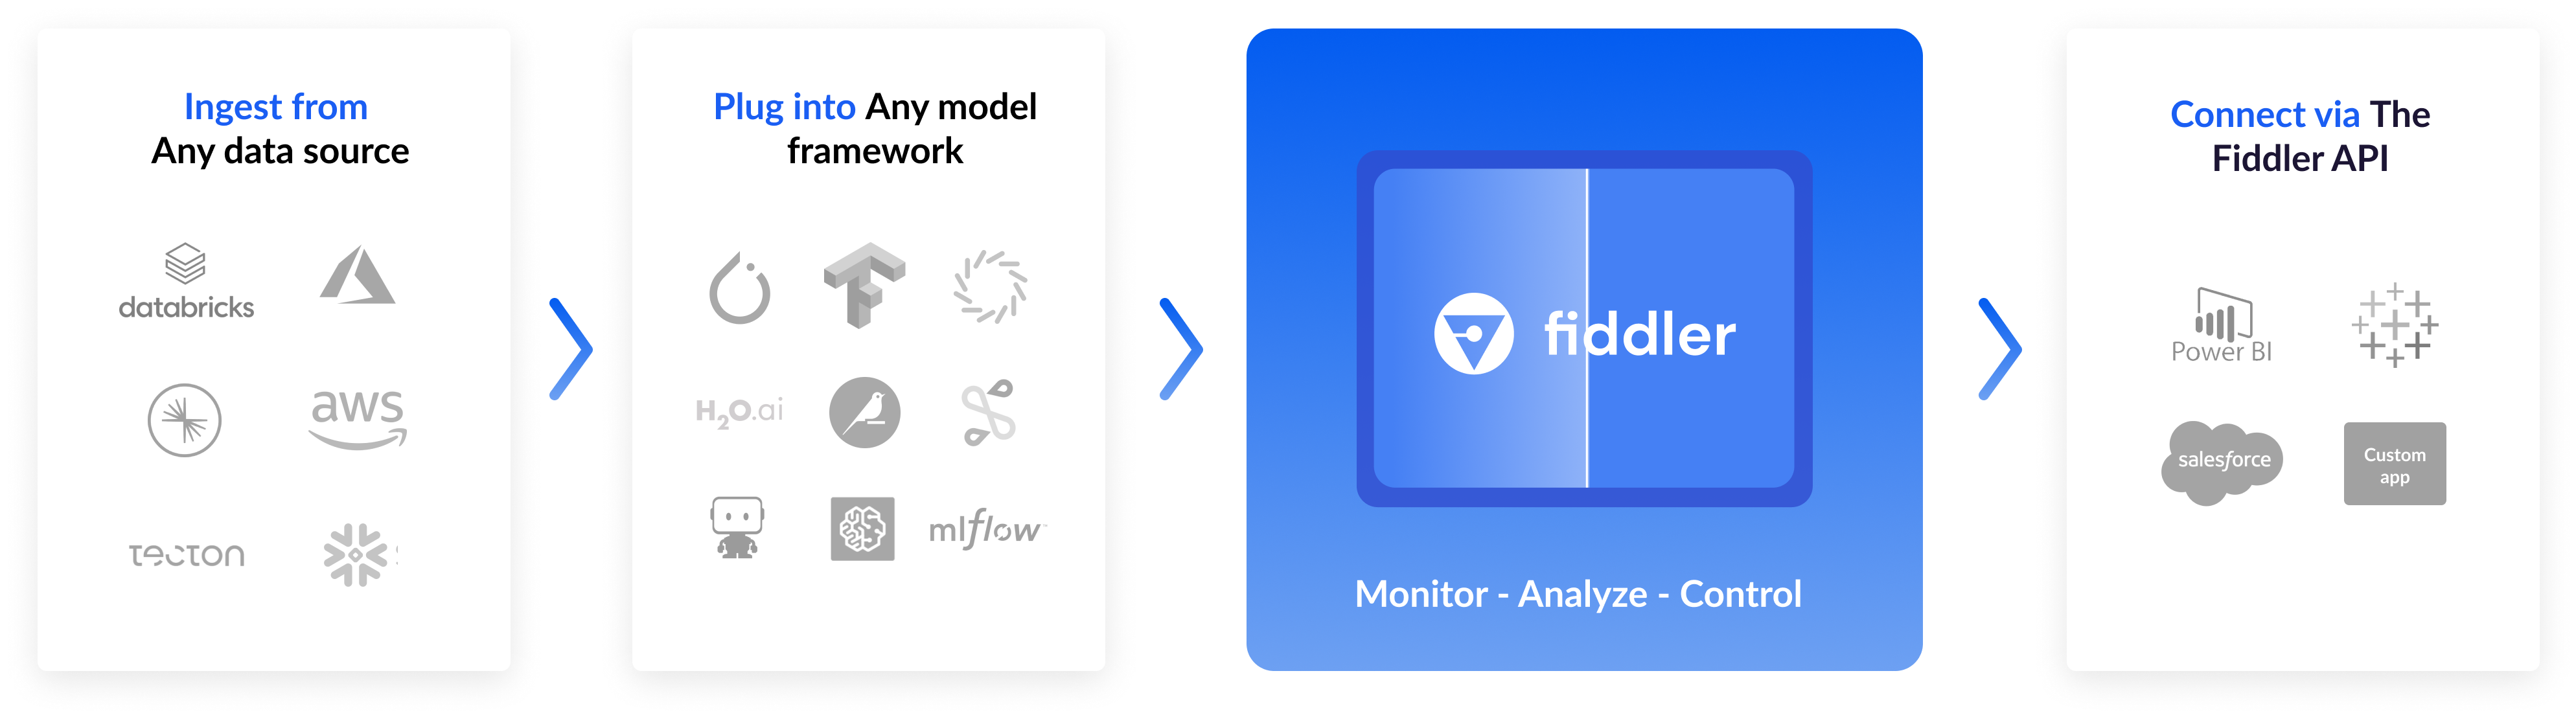 Fiddler's Accelerated MLOps at a glance diagram. Fiddler's ML Monitoring solutions can ingest from any data source (for example, databricks, azure, aws, snowflake) and plug into any model framework (like pytorch, tensorflow, h20.ai, dataiku) to start monitoring and analyzing models. Once connected, the monitoring output and generated explanations from Fiddler's latest Explainable AI technology can be used in PowerBI, Tableau, Salesforce, and other custom applications via Fiddler API.